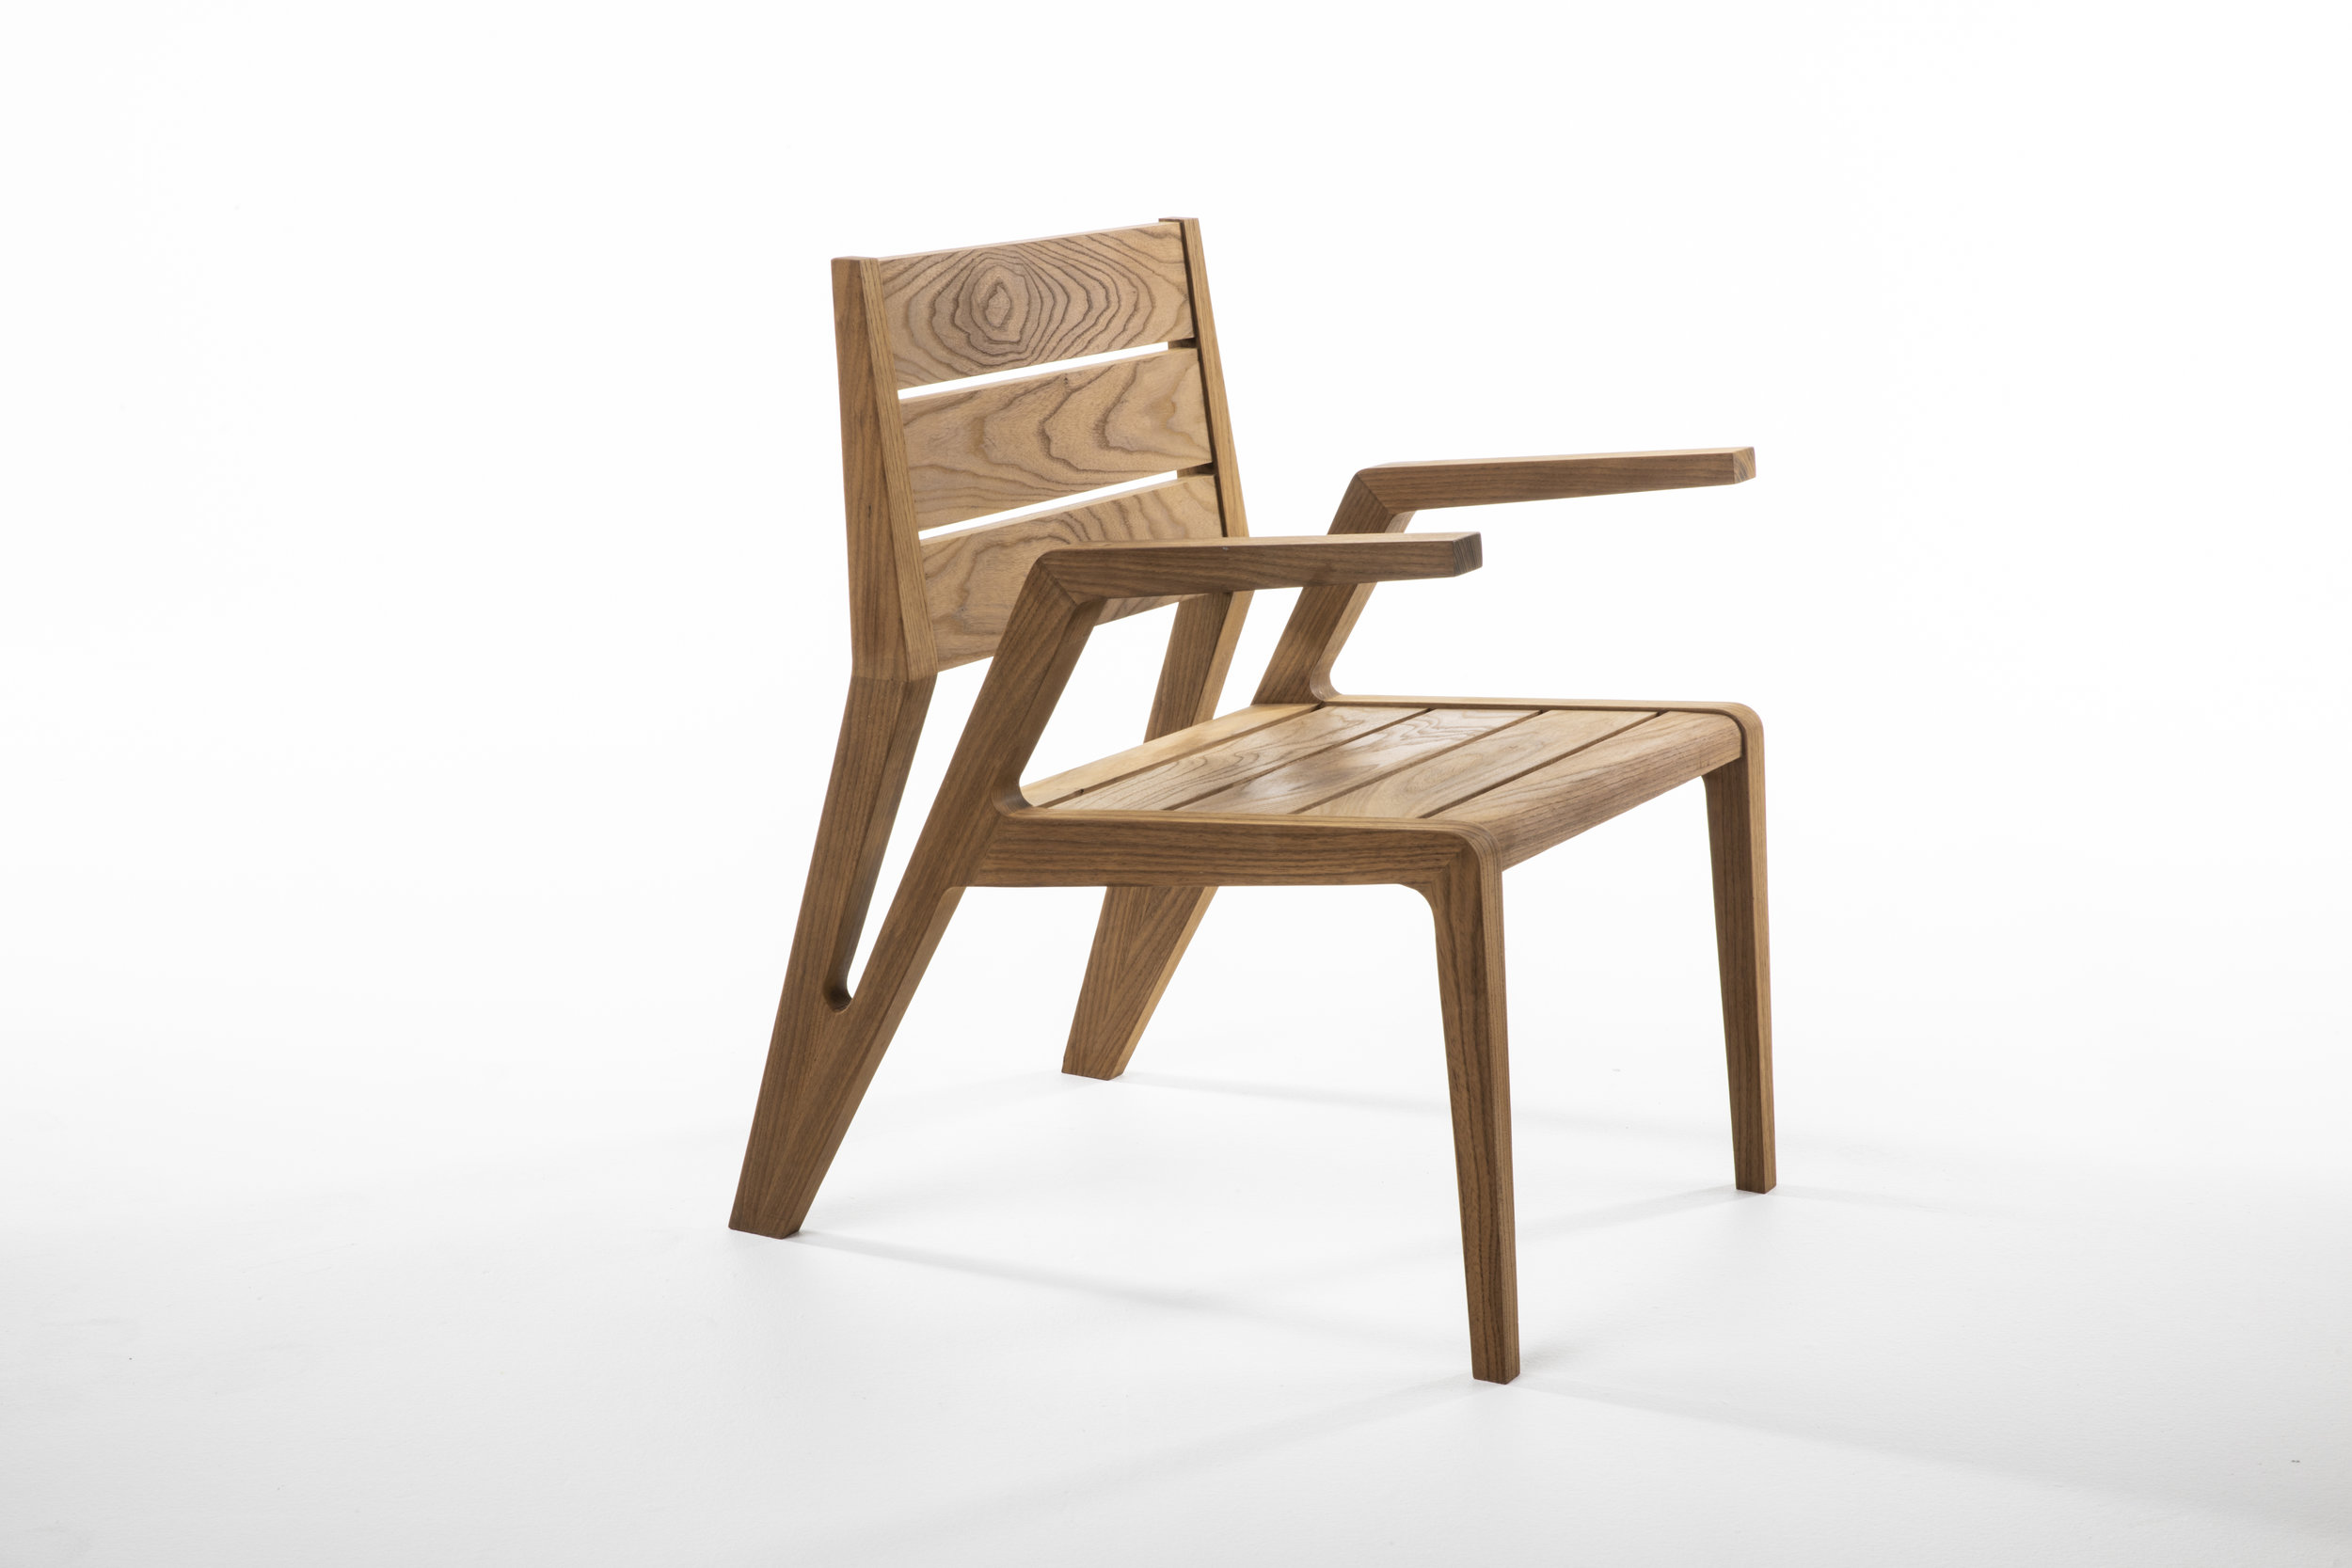 Aaron Atwood won the innovation award for a dining chair design.